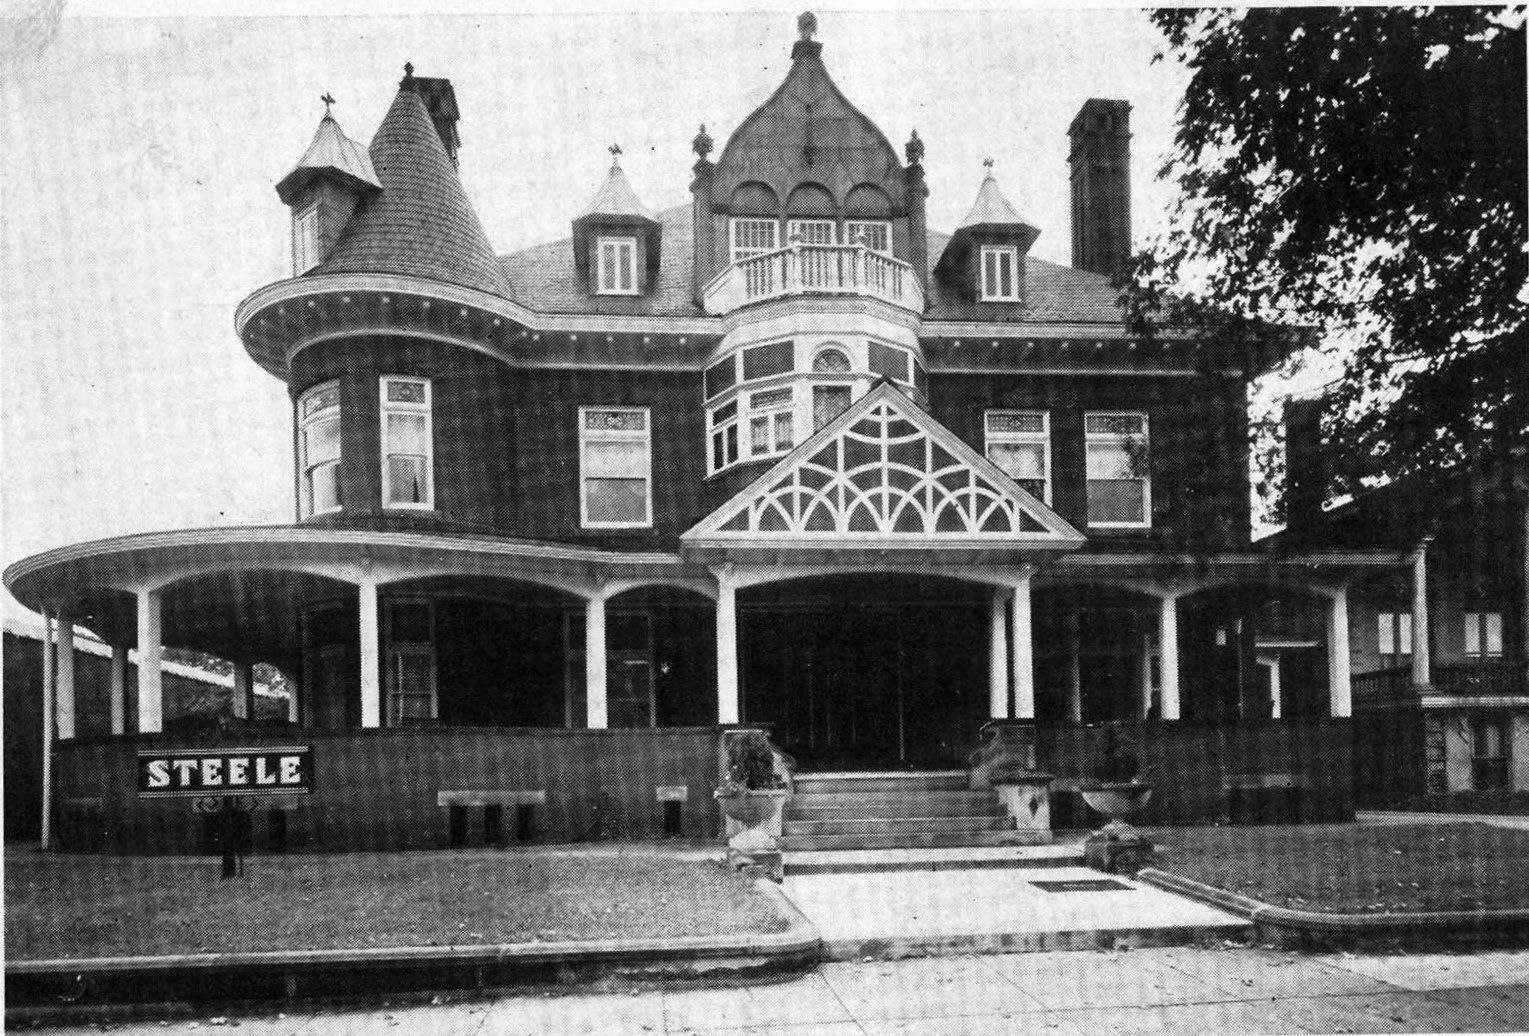 The Enslow Mansion sometime after its conversion into the Steele Funeral Home. Image courtesy of Marshall University Special Collections.